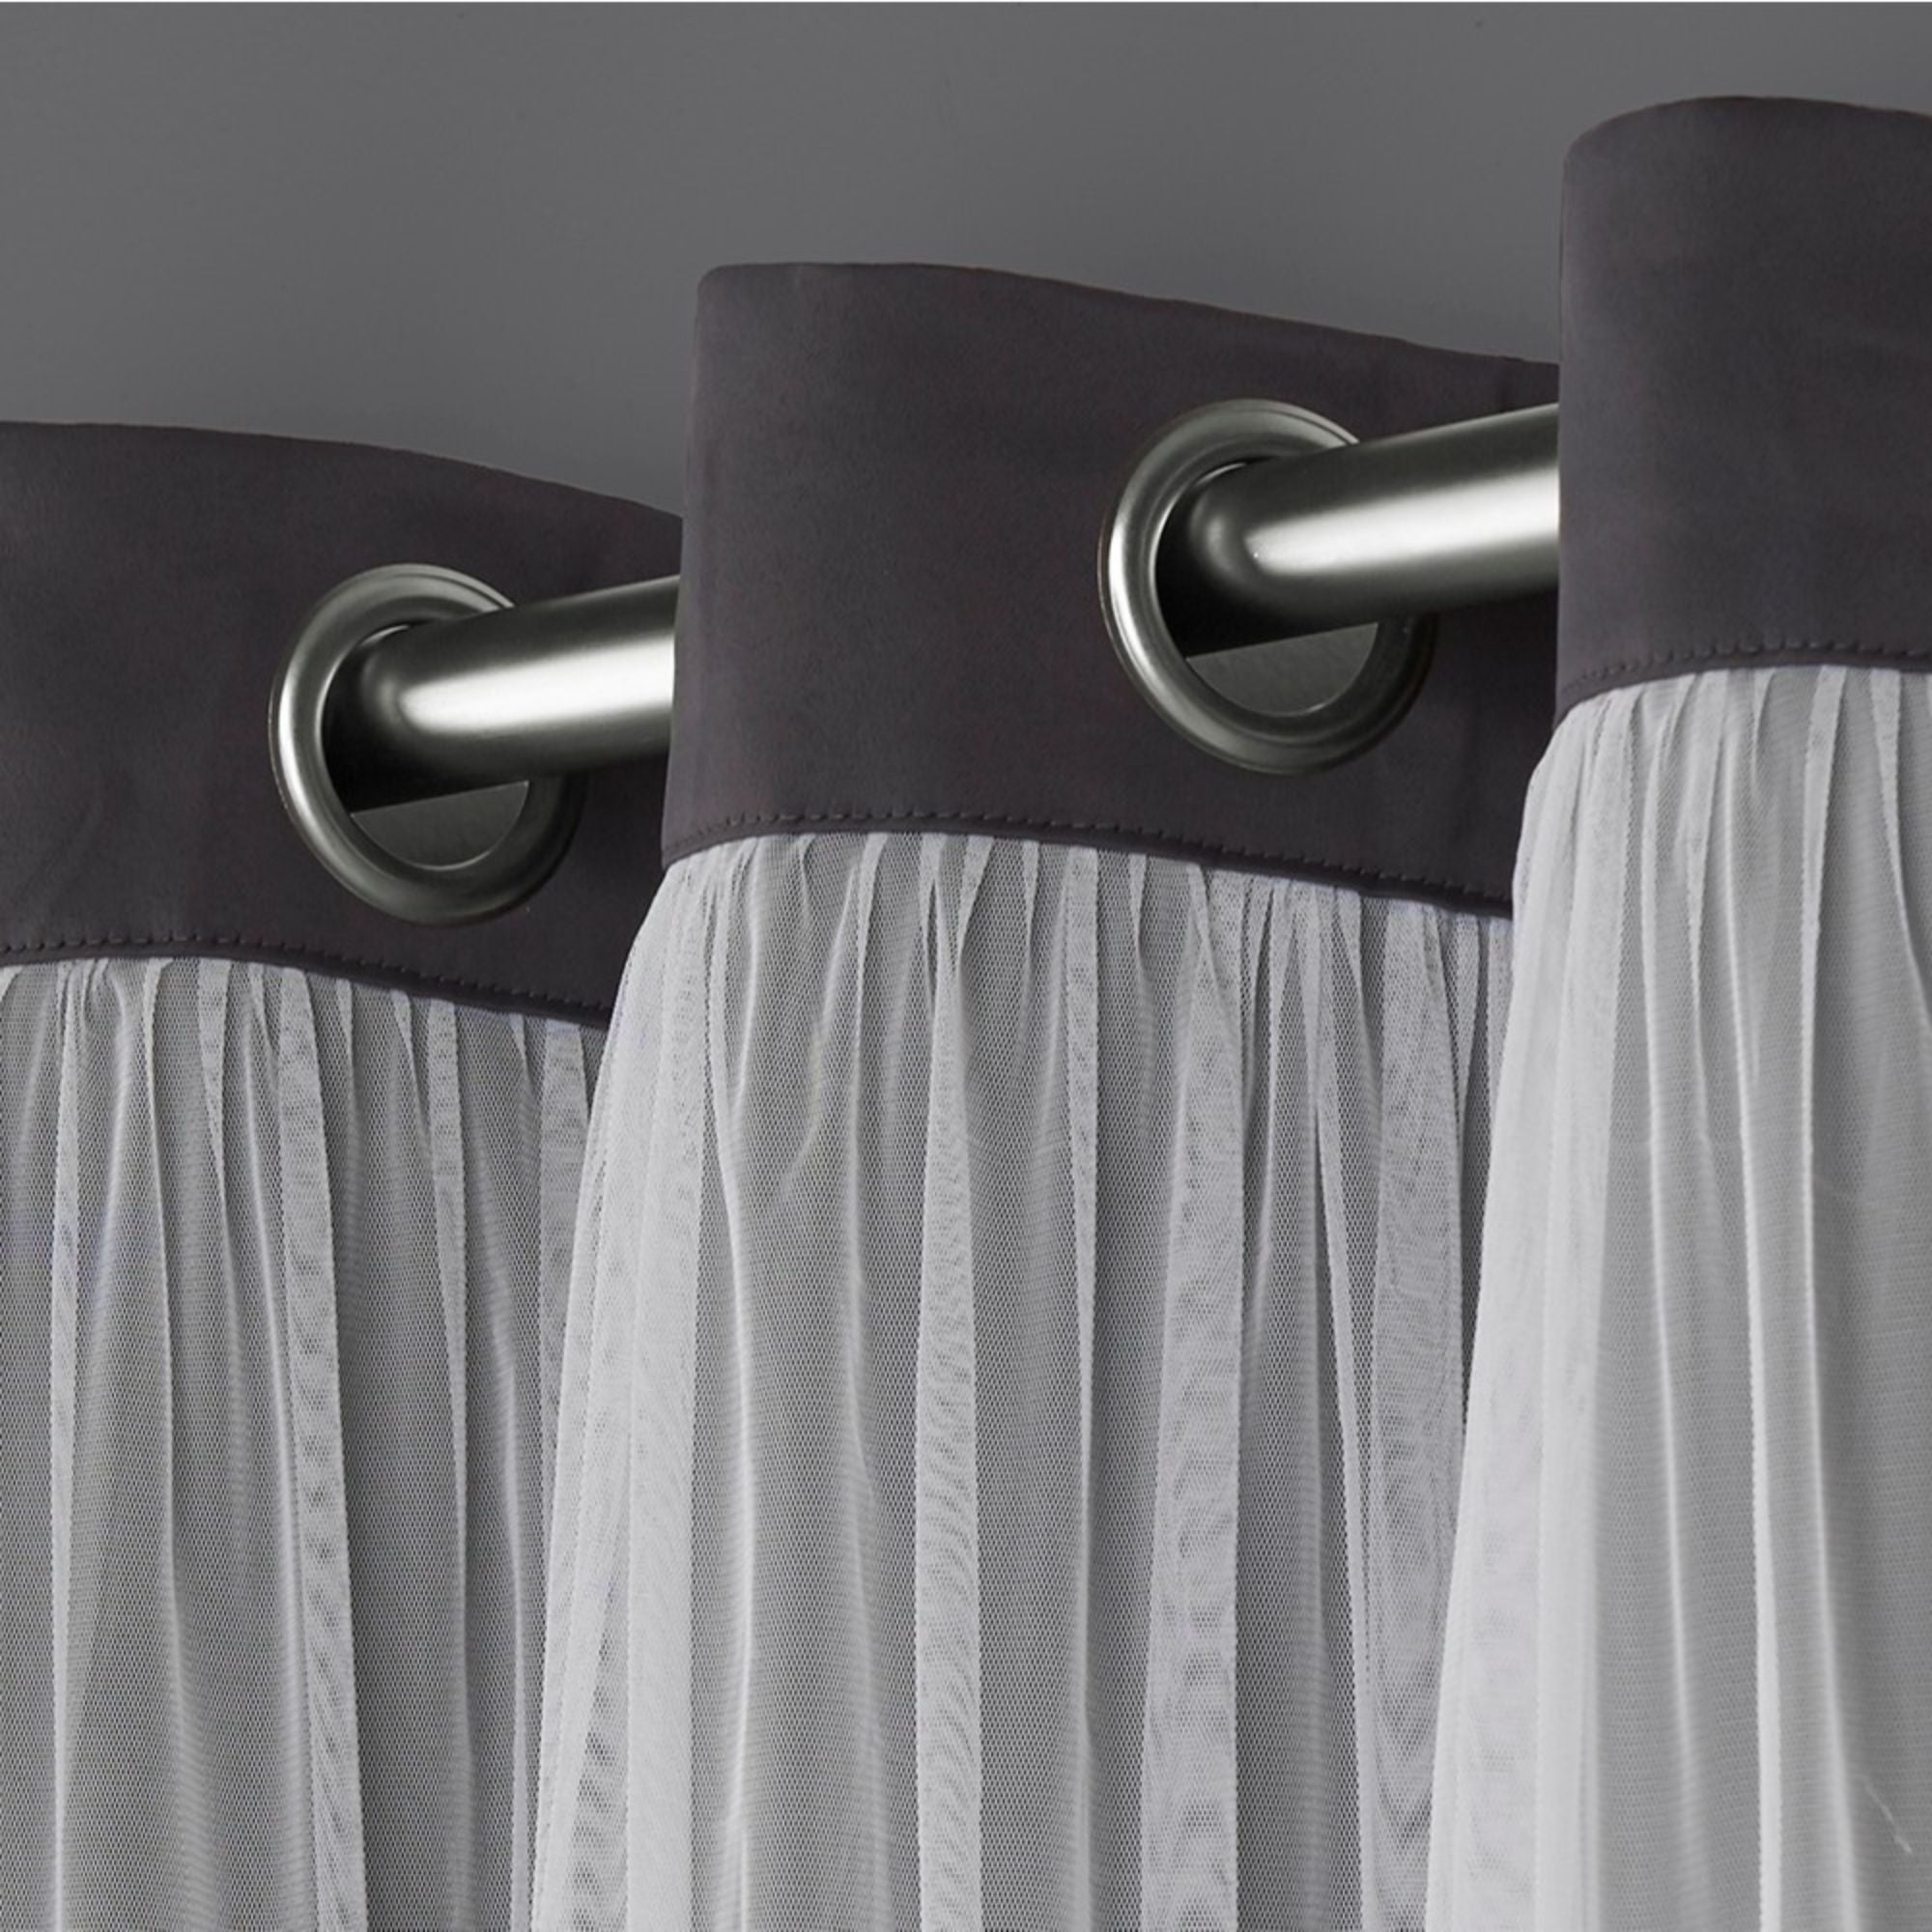 Ati Home Belgian Jacquard Sheer Double Pinch Pleat Top Curtain Panel Pair Throughout Double Pinch Pleat Top Curtain Panel Pairs (View 3 of 20)